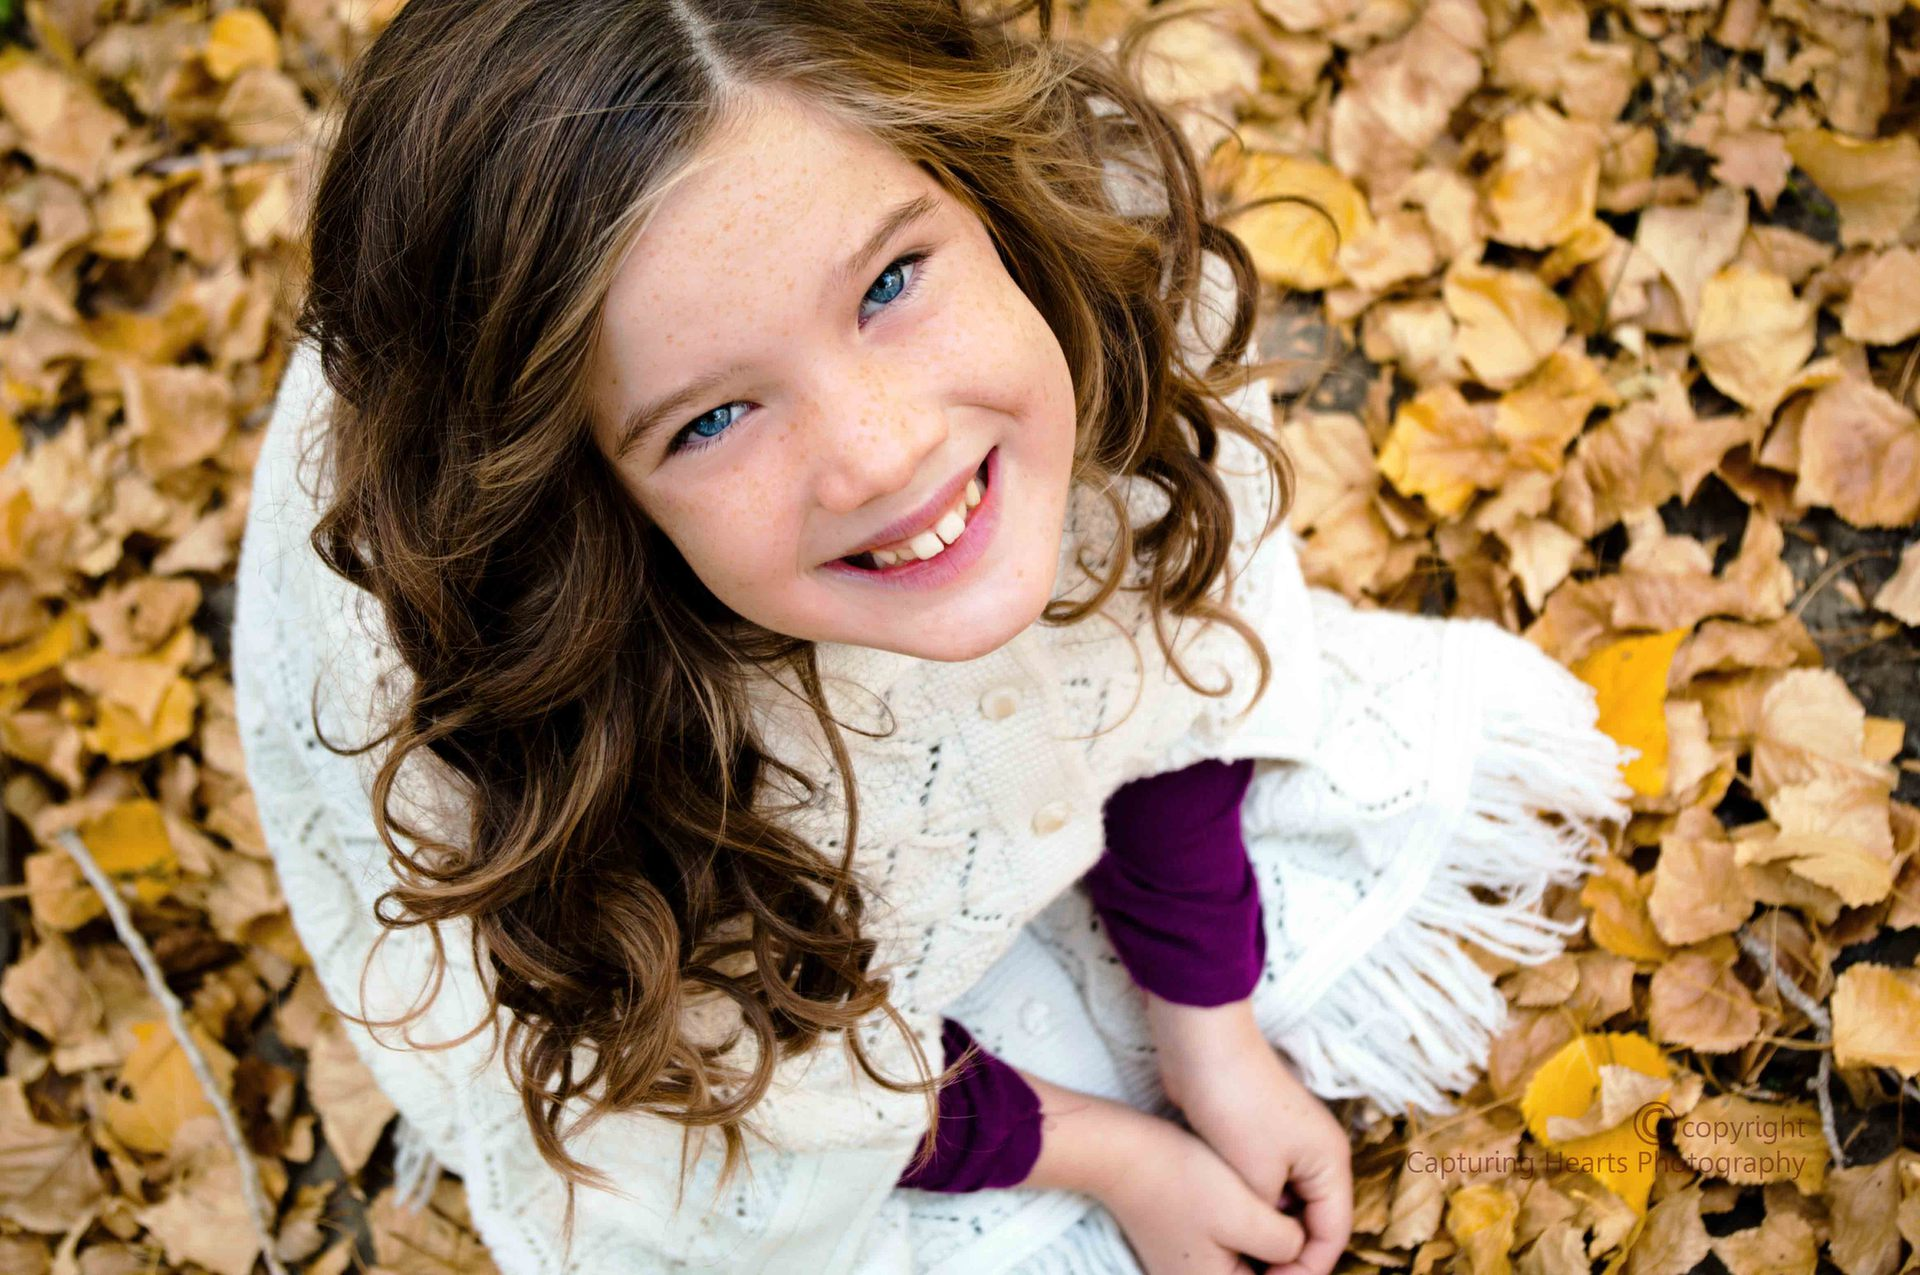 Beautiful+Child+Model+Colorado+Spings+Child+Photography+Curly+Brown+Hair+Blue+Eyes+COPYRIGHTSCREEN